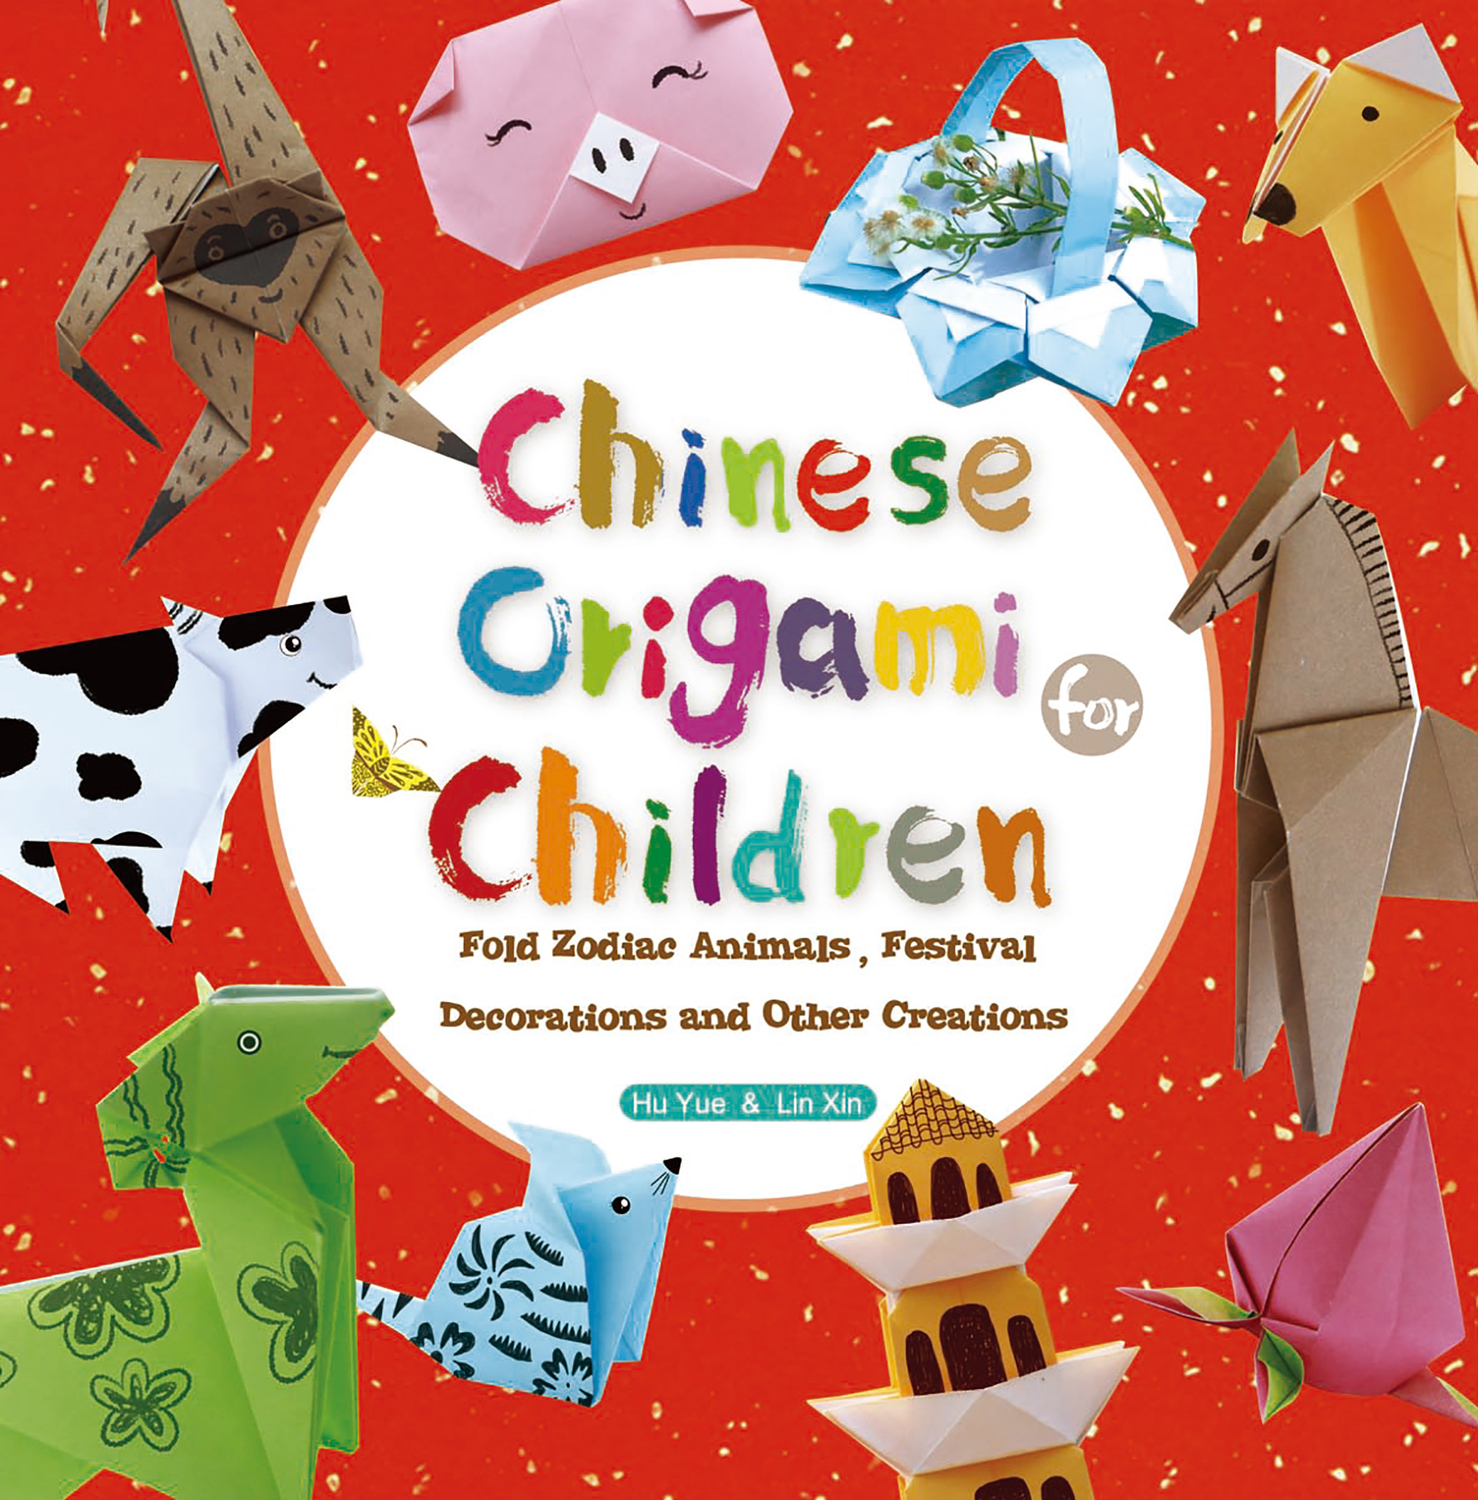 Chinese Origami for Children